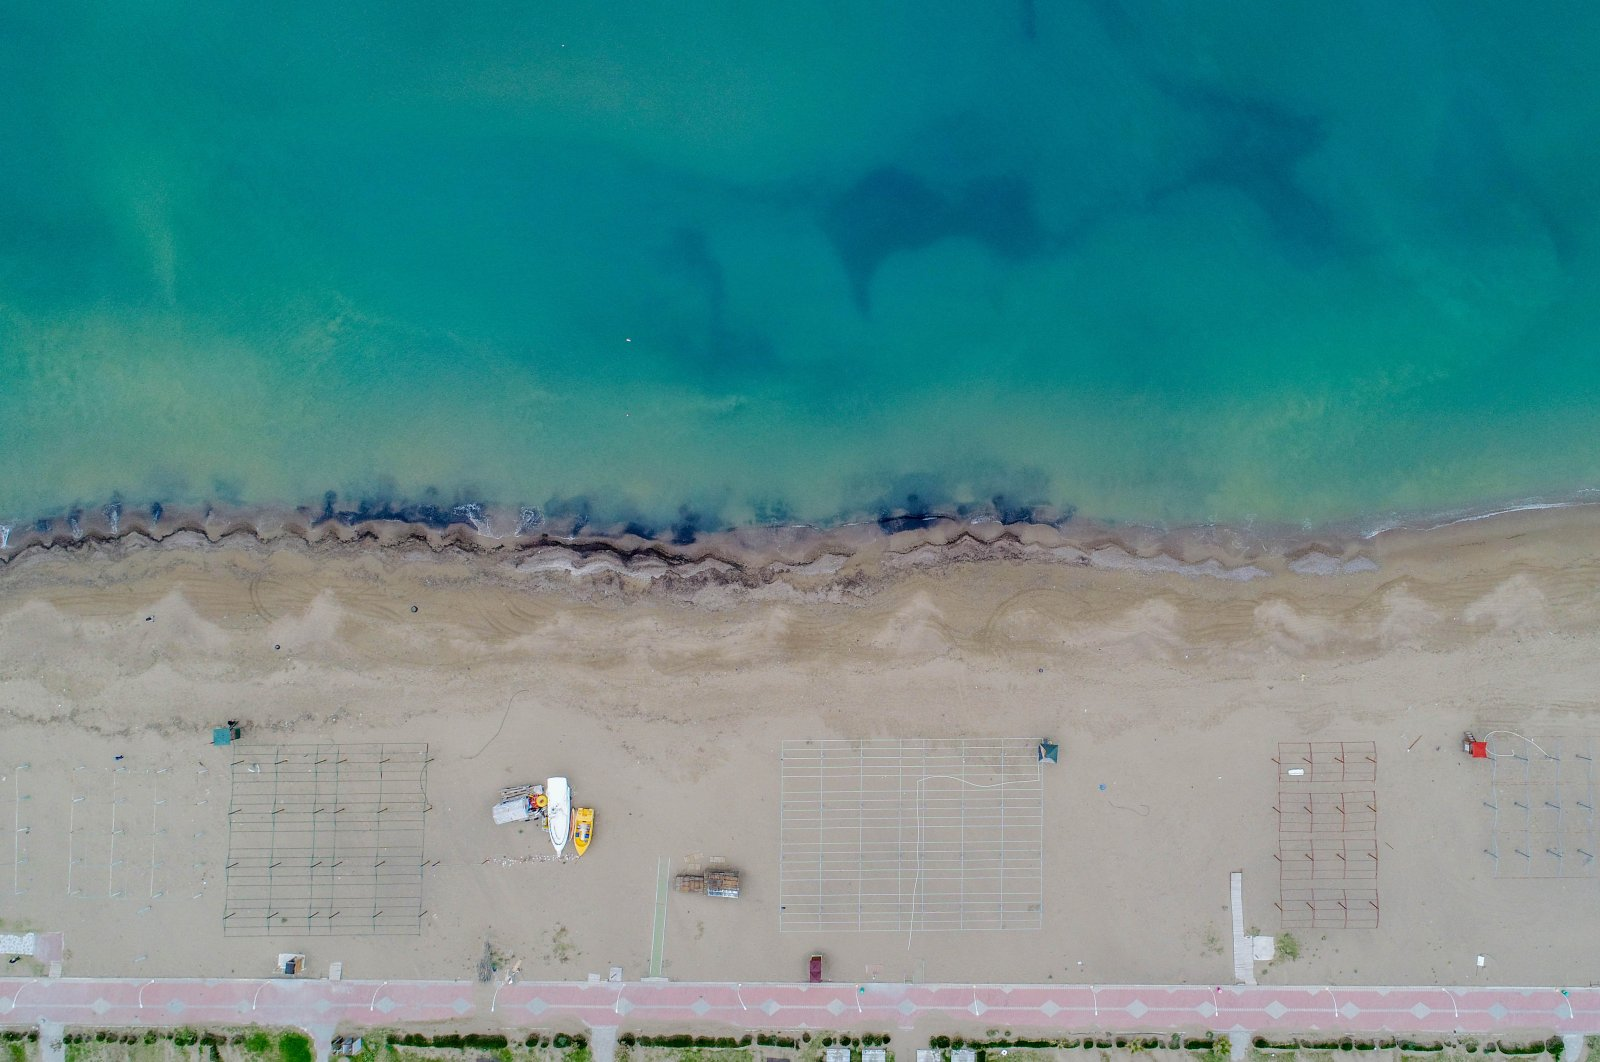 Beaches in Turkey's popular tourist destination Antalya are nearly deserted due to COVID-19, Tuesday, March 31, 2020. (DHA Photo)